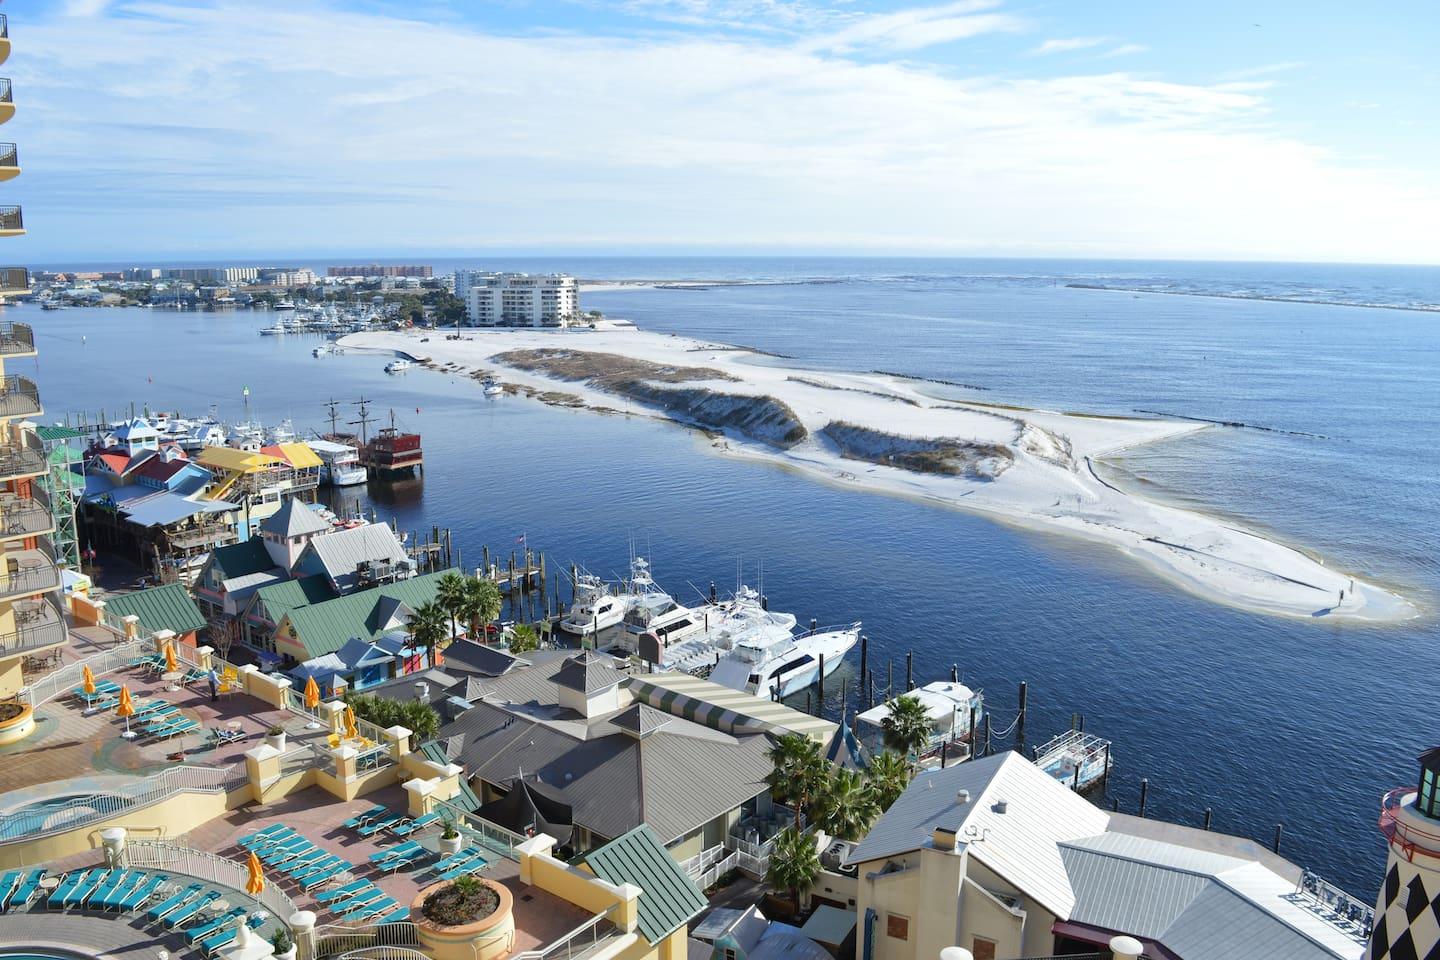 Balcony View of Destin Harbor and the Gulf